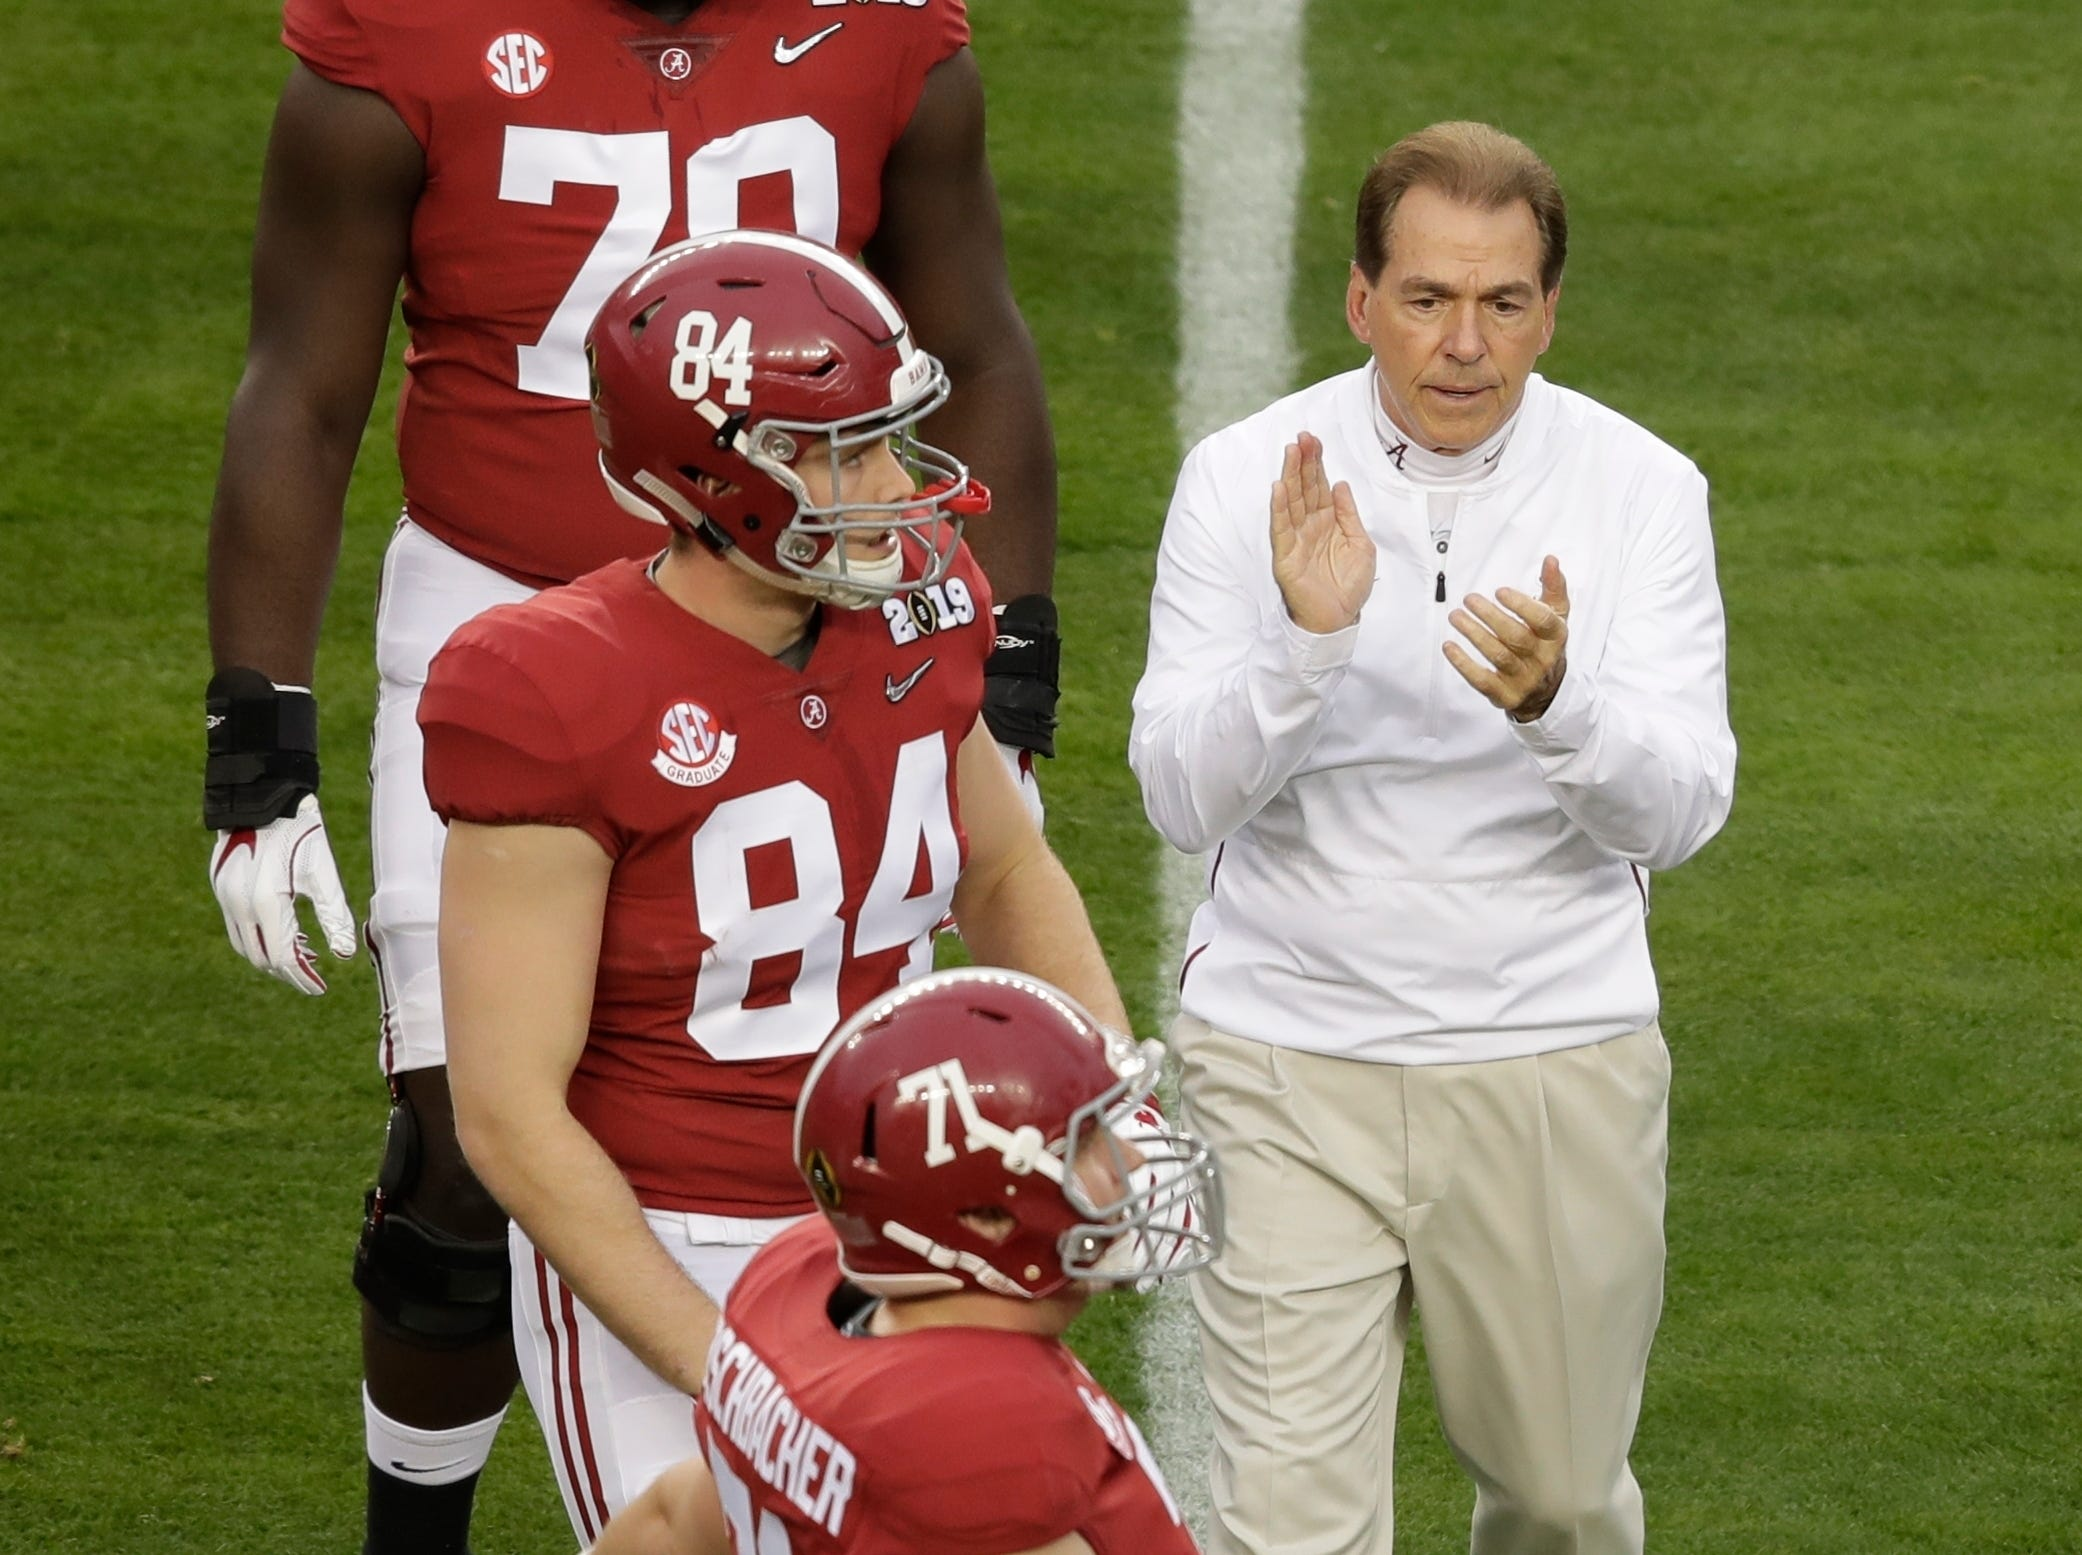 Alabama head coach Nick Saban watches warm ups before the NCAA college football playoff championship game against Clemson Monday, Jan. 7, 2019, in Santa Clara, Calif. (AP Photo/Jeff Chiu)